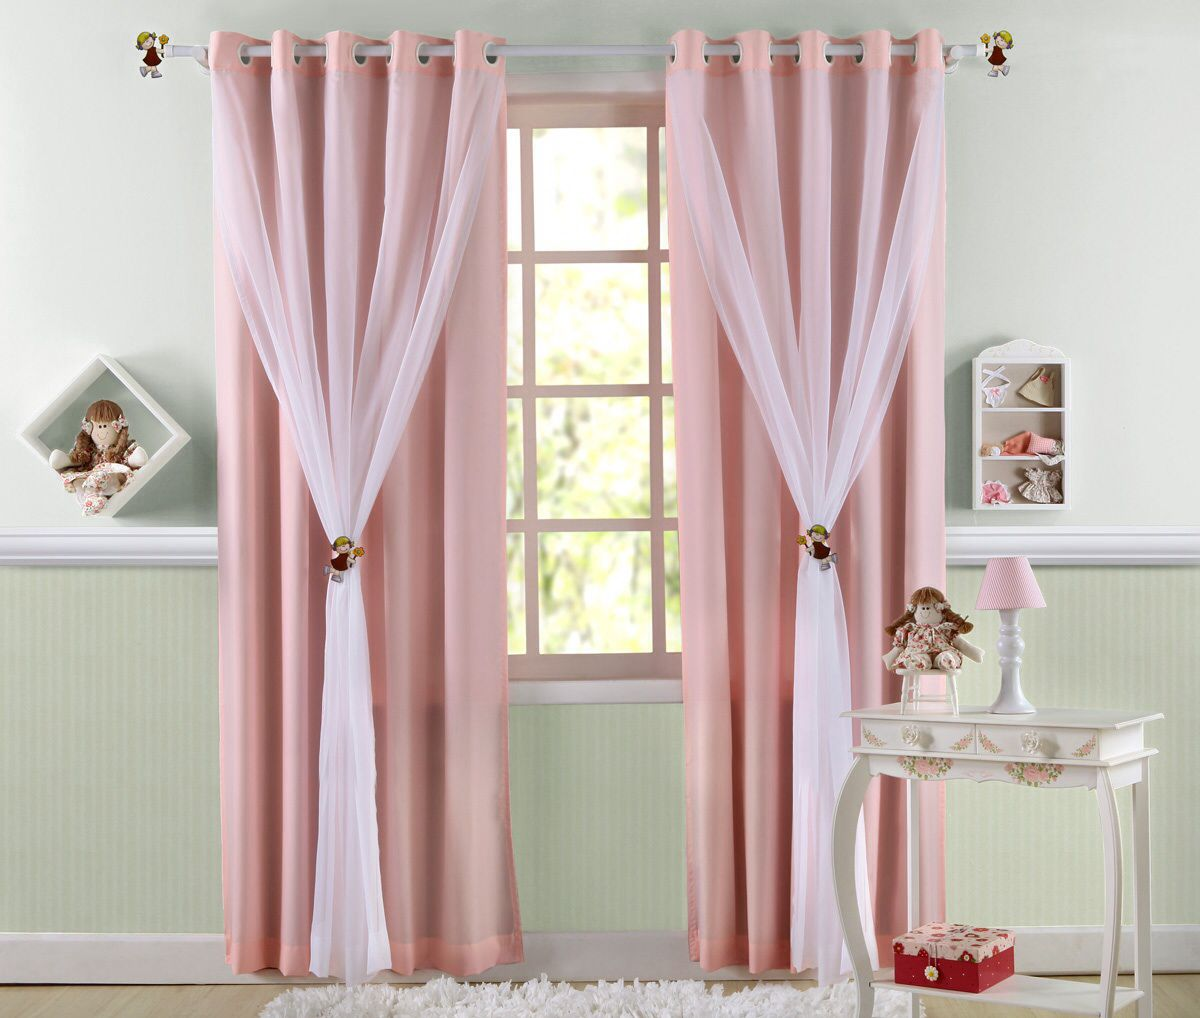 Cortina infantil rosa decoraci n pinterest cortinas for Cortinas para cuartos infantiles